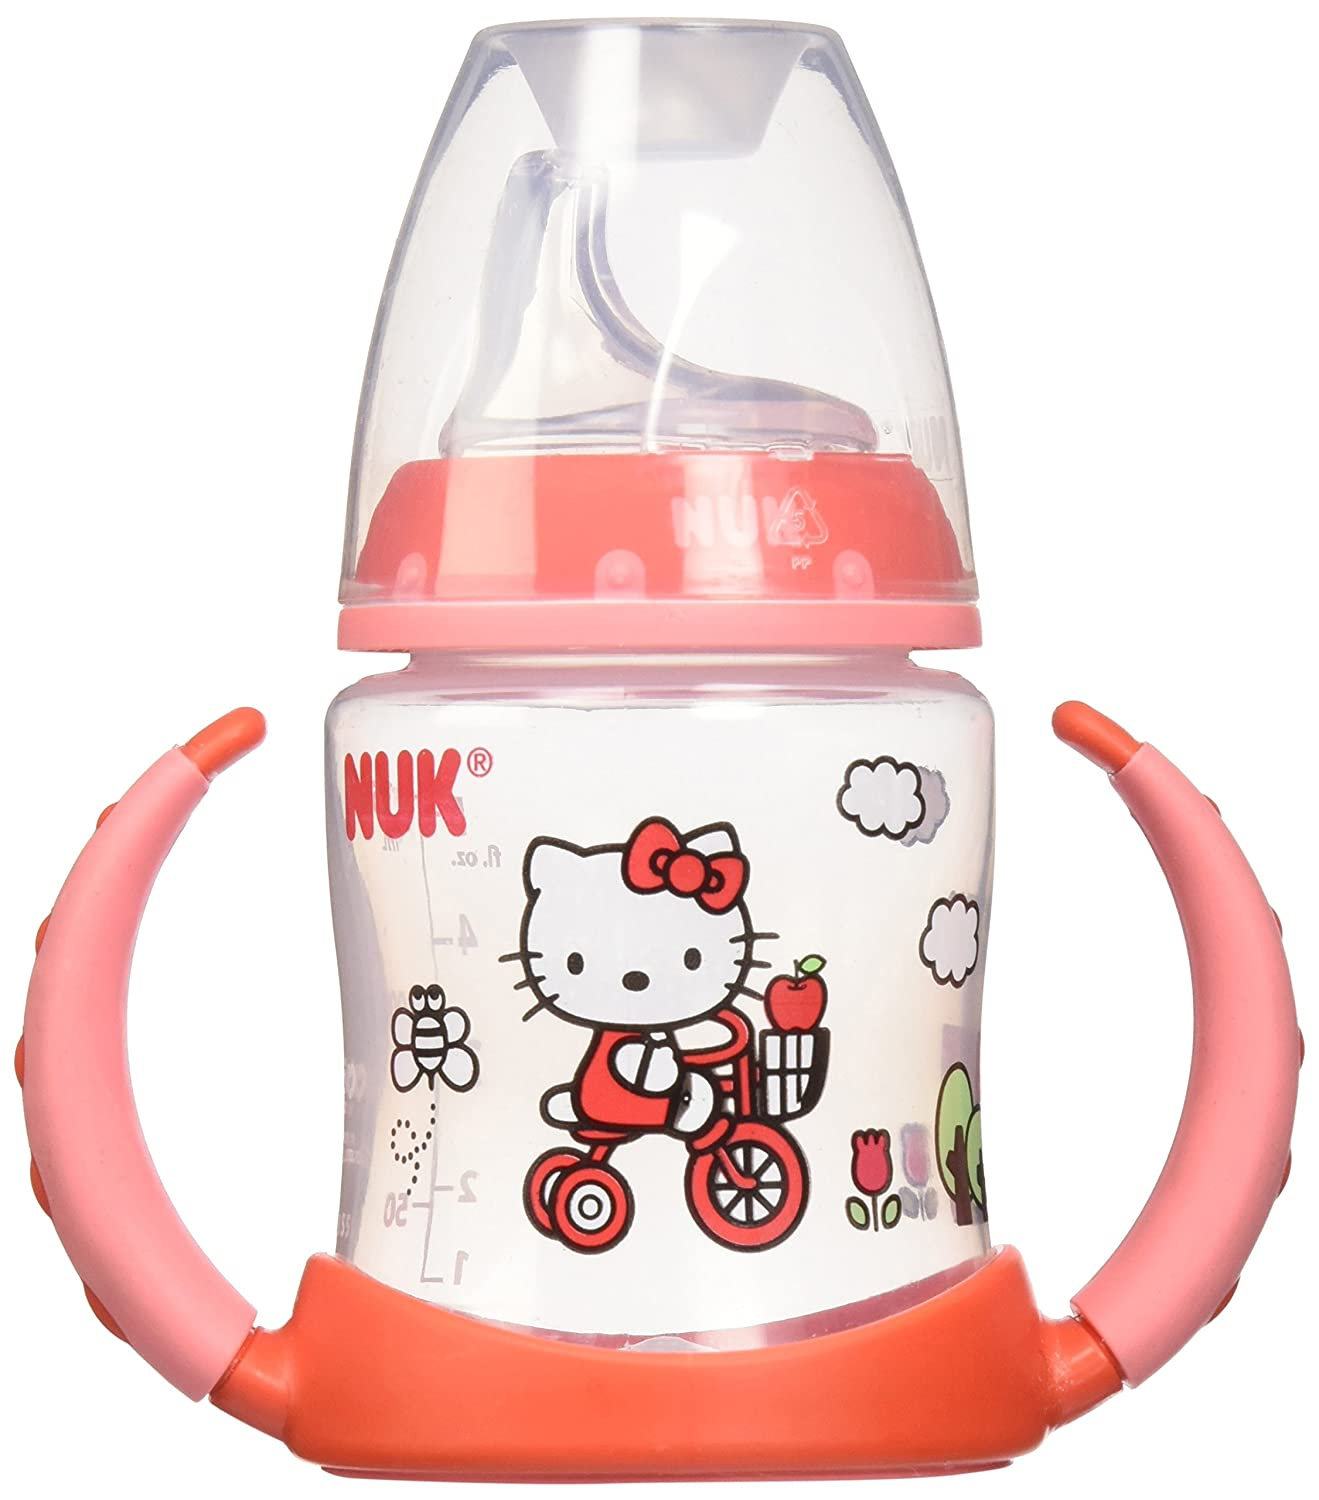 NUK Hello Kitty Learner Cup with Silicone Spout, 5-Ounce 62757